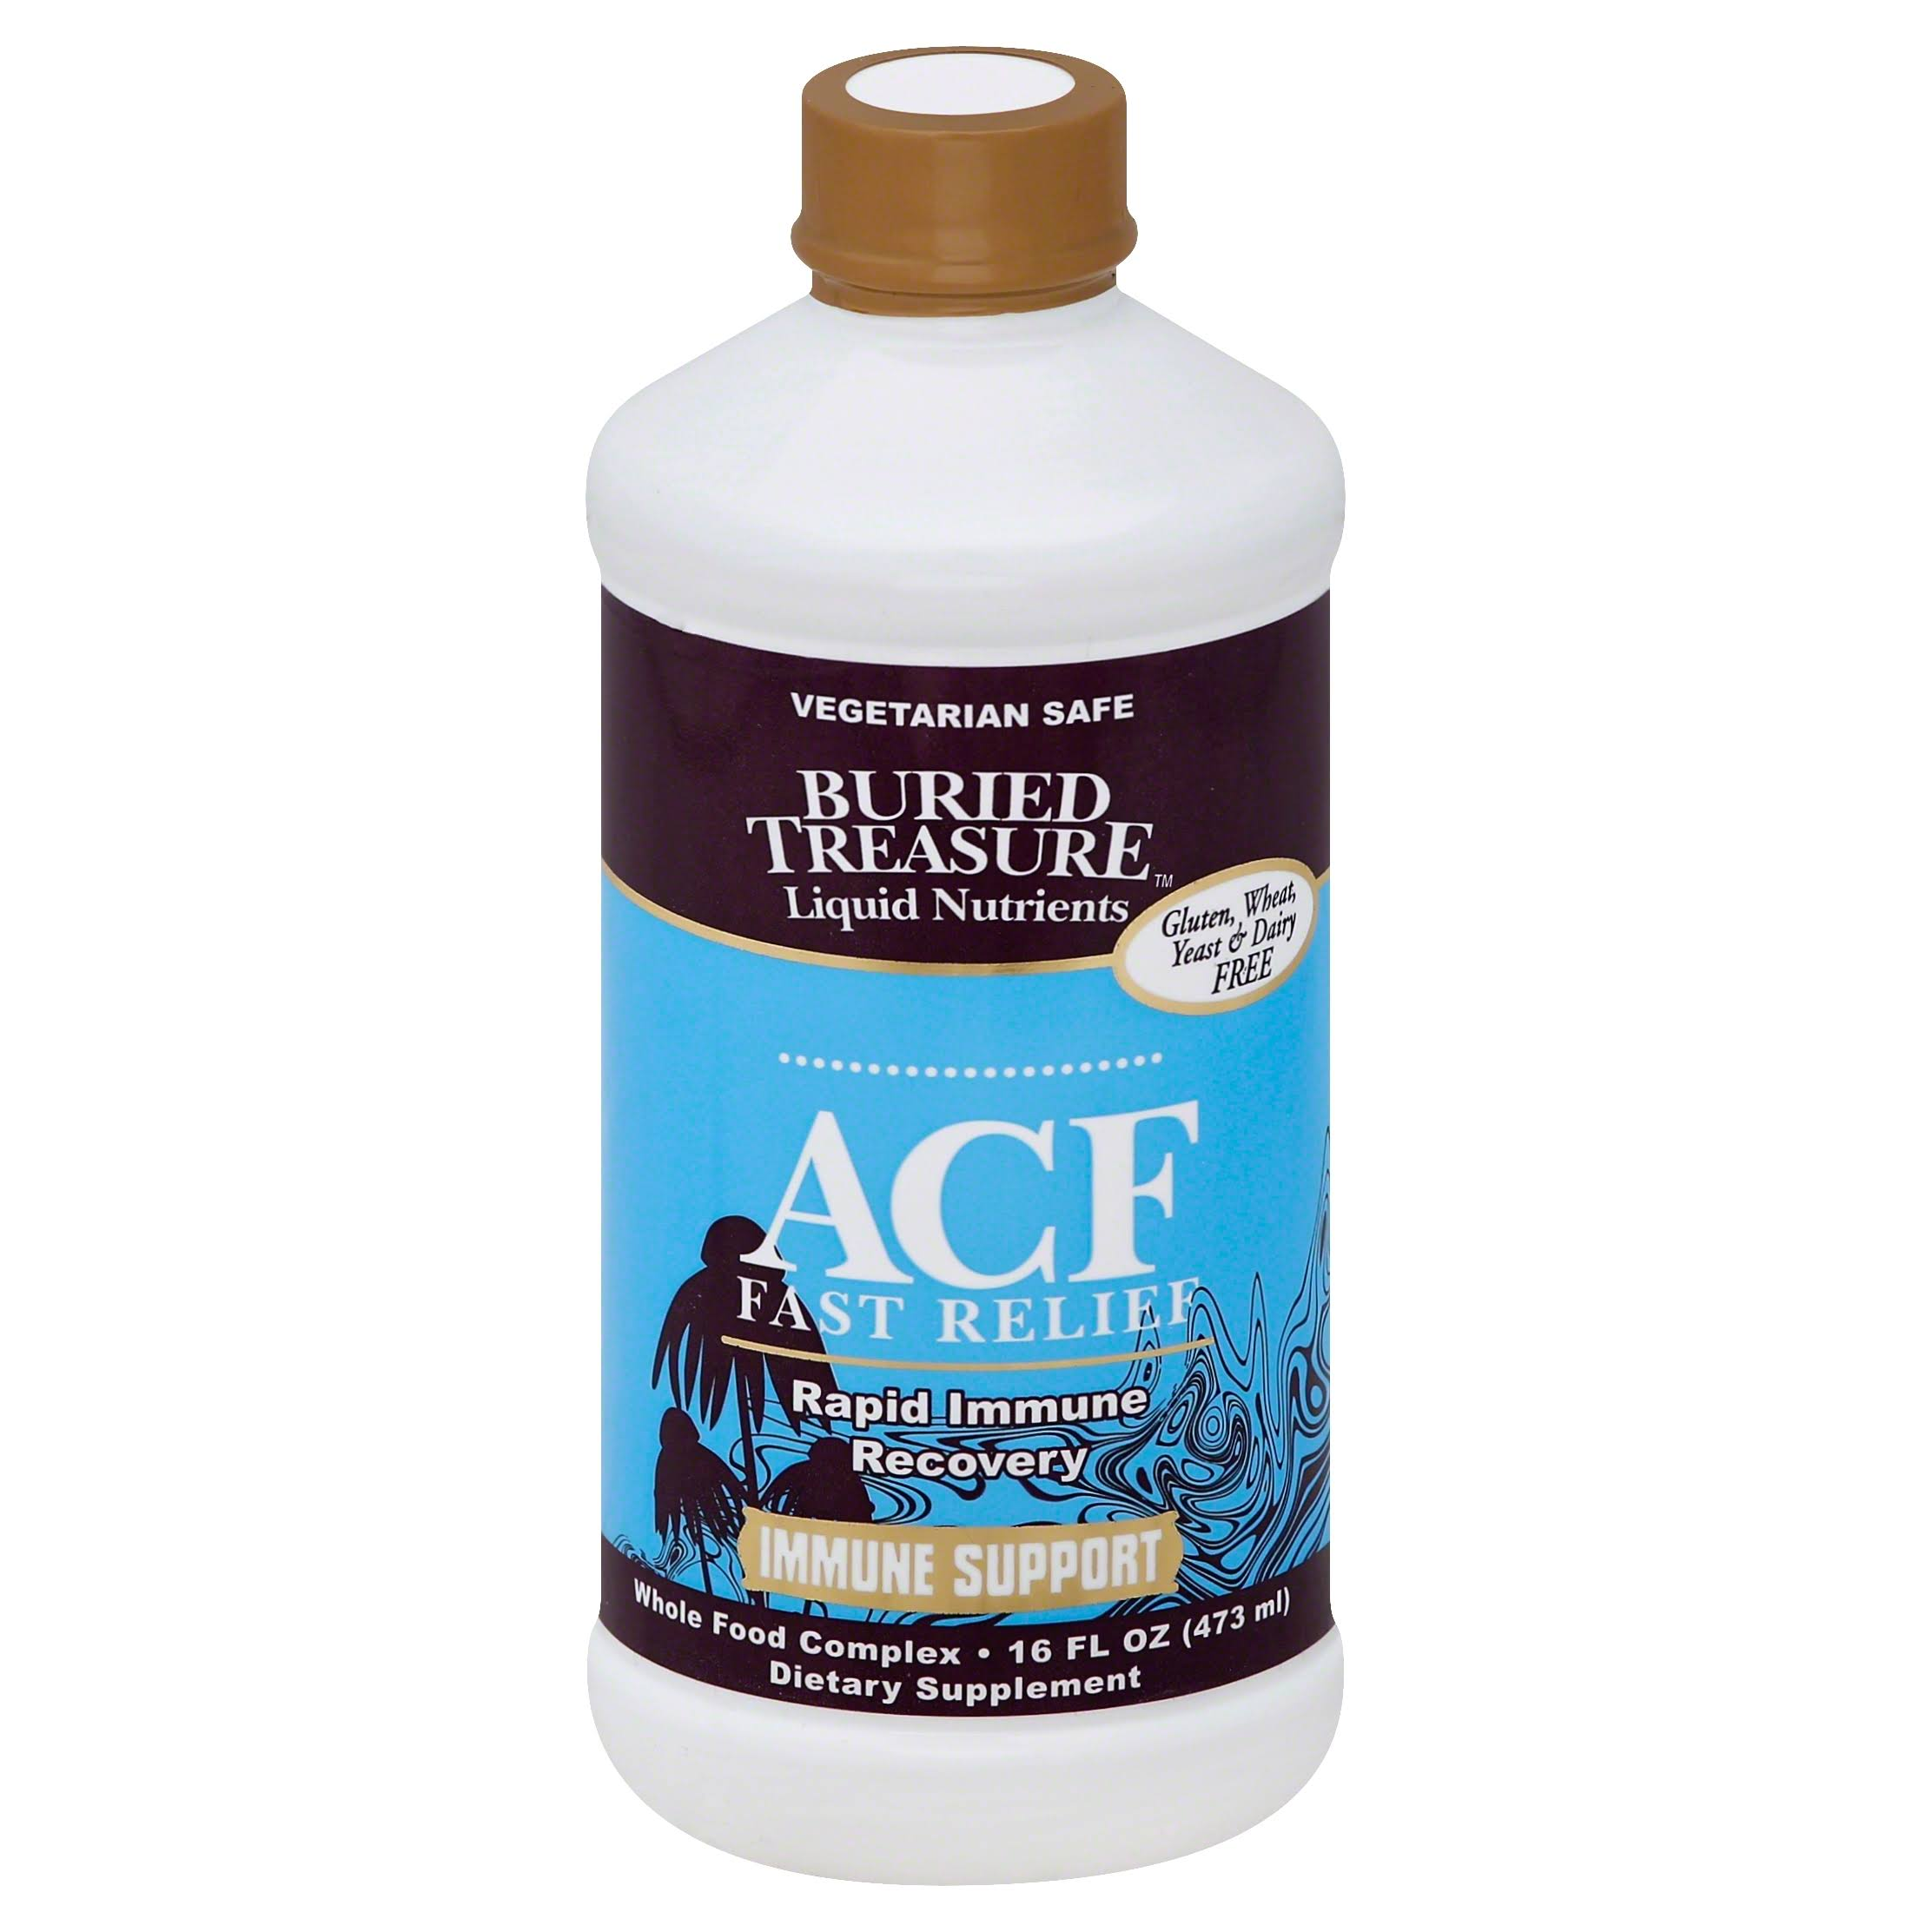 Buried Treasure Ace Fast Relief Rapid Immune Recovery